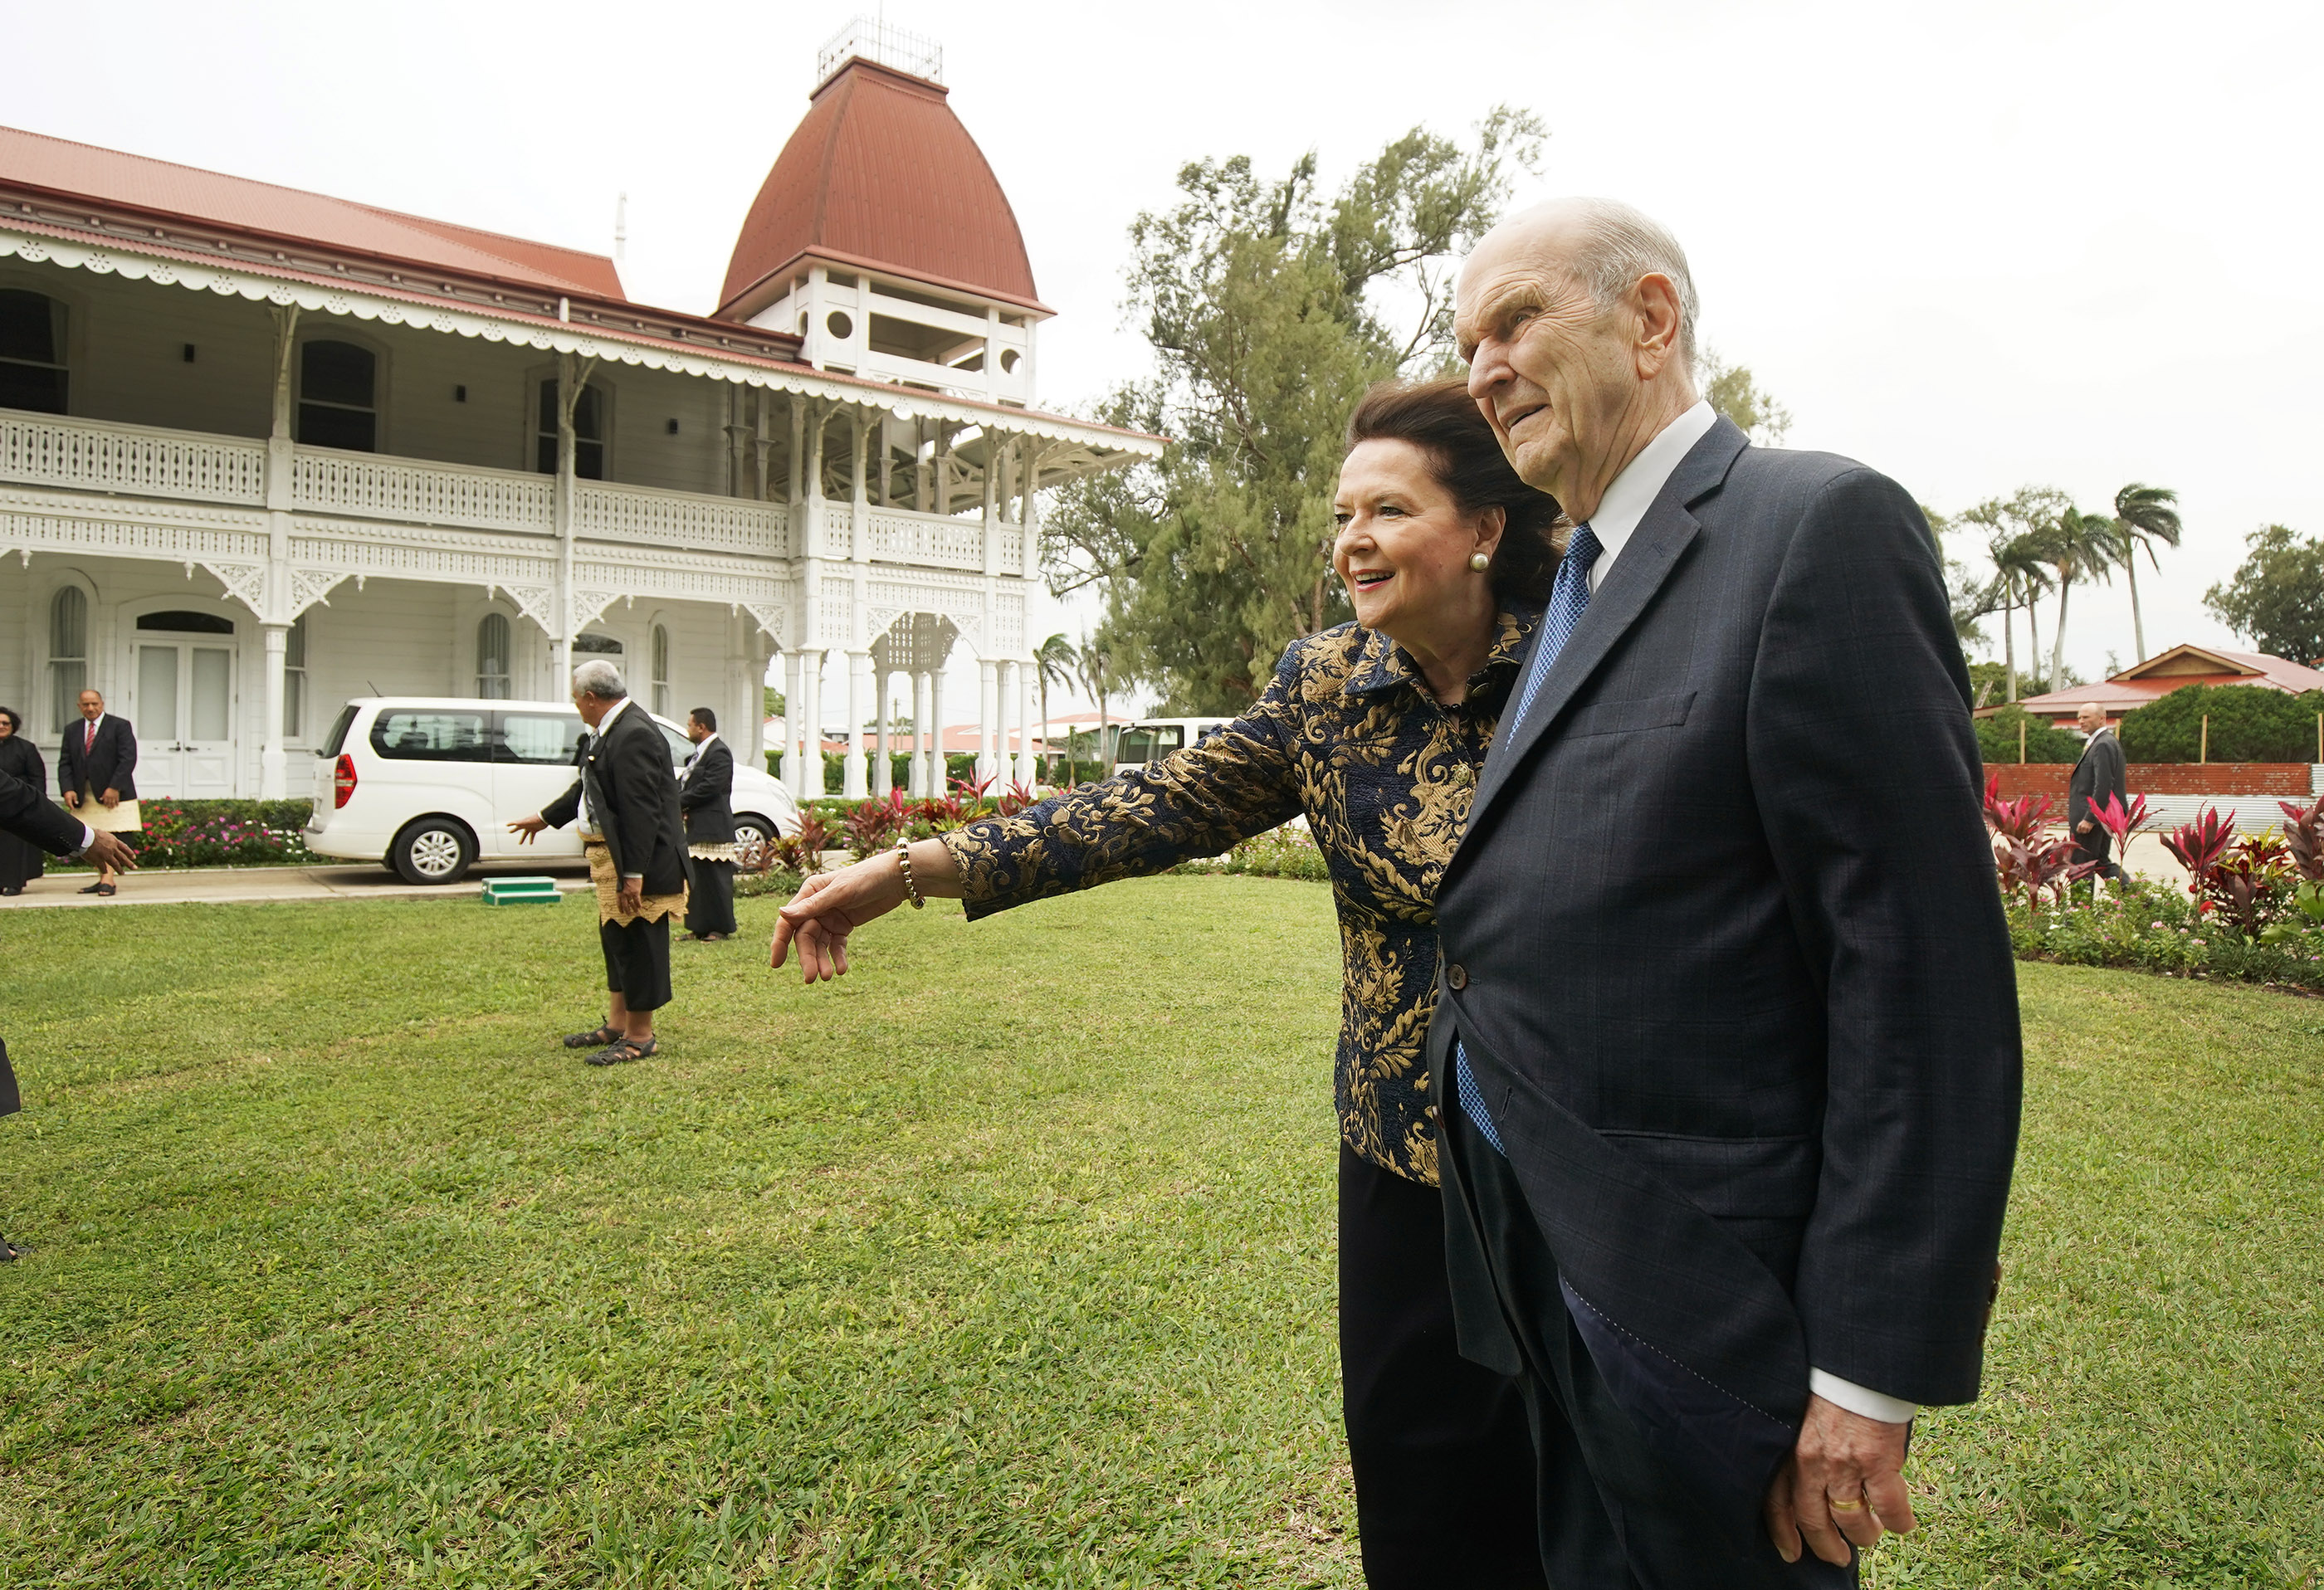 President Russell M. Nelson of The Church of Jesus Christ of Latter-day Saints and his wife, Sister Wendy Nelson, walks the grounds after meeting with 'Aho'eitu Tupou VI, King of Tonga, at the Royal Palace in Tonga on May 23, 2019.